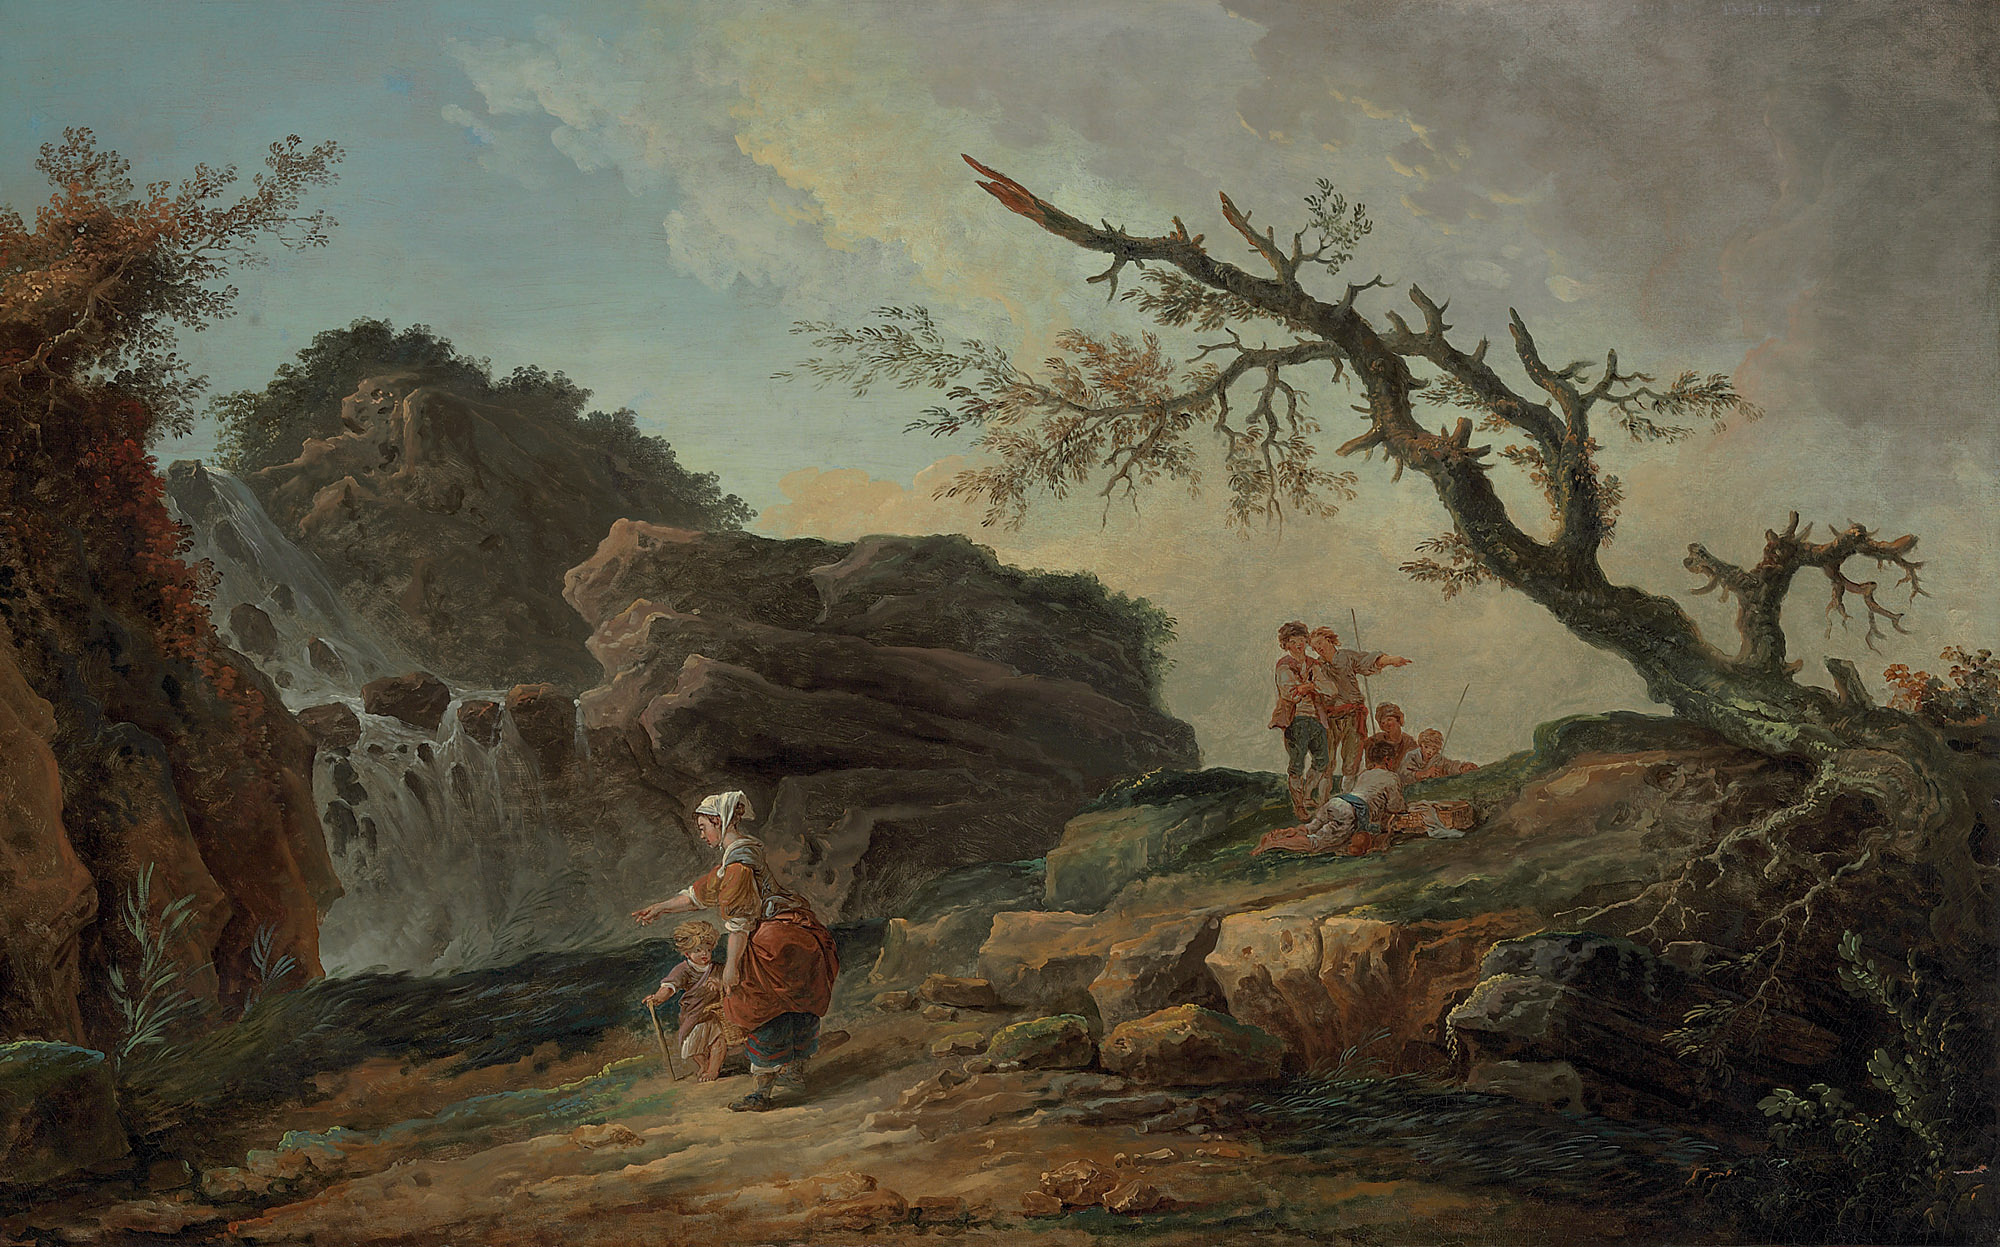 La Cascade: a rocky hillside with a peasant woman and child near a waterfall and boys resting by a blasted tree